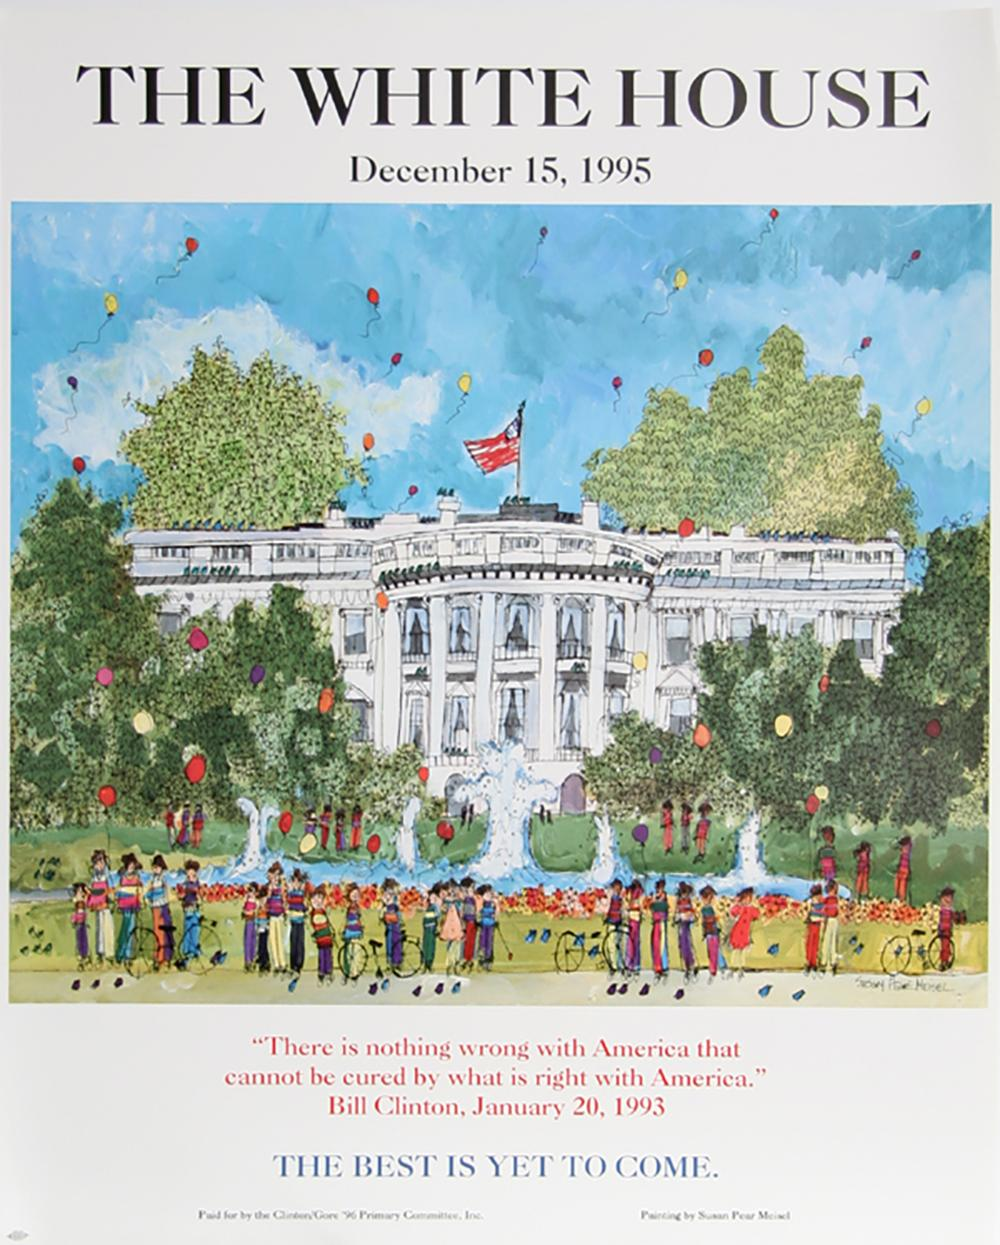 SUSAN PEAR MEISEL, THE WHITE HOUSE - BILL CLINTON, POSTER